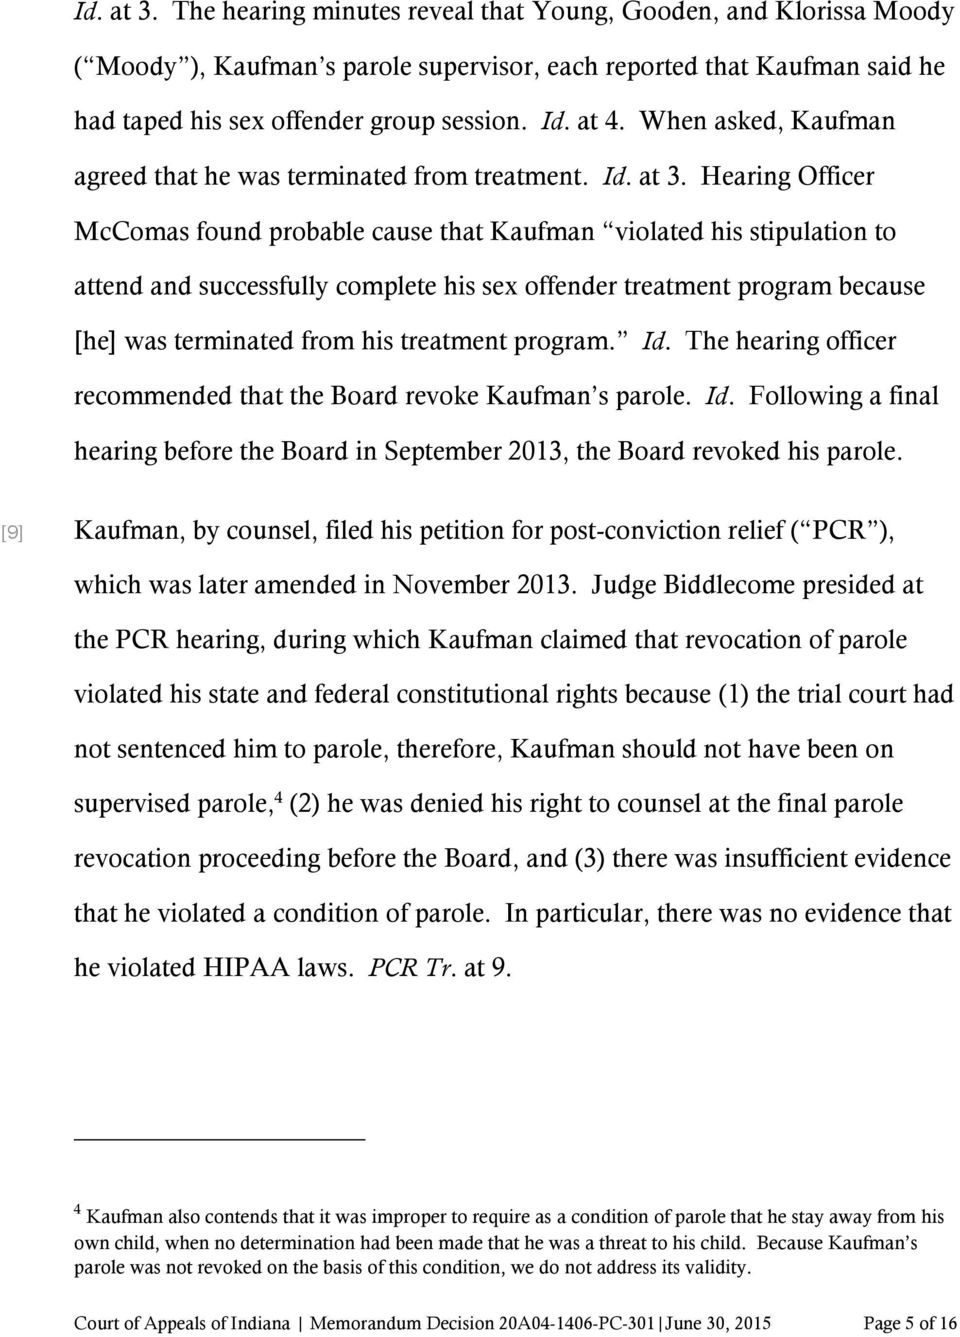 Hearing Officer McComas found probable cause that Kaufman violated his stipulation to attend and successfully complete his sex offender treatment program because [he] was terminated from his